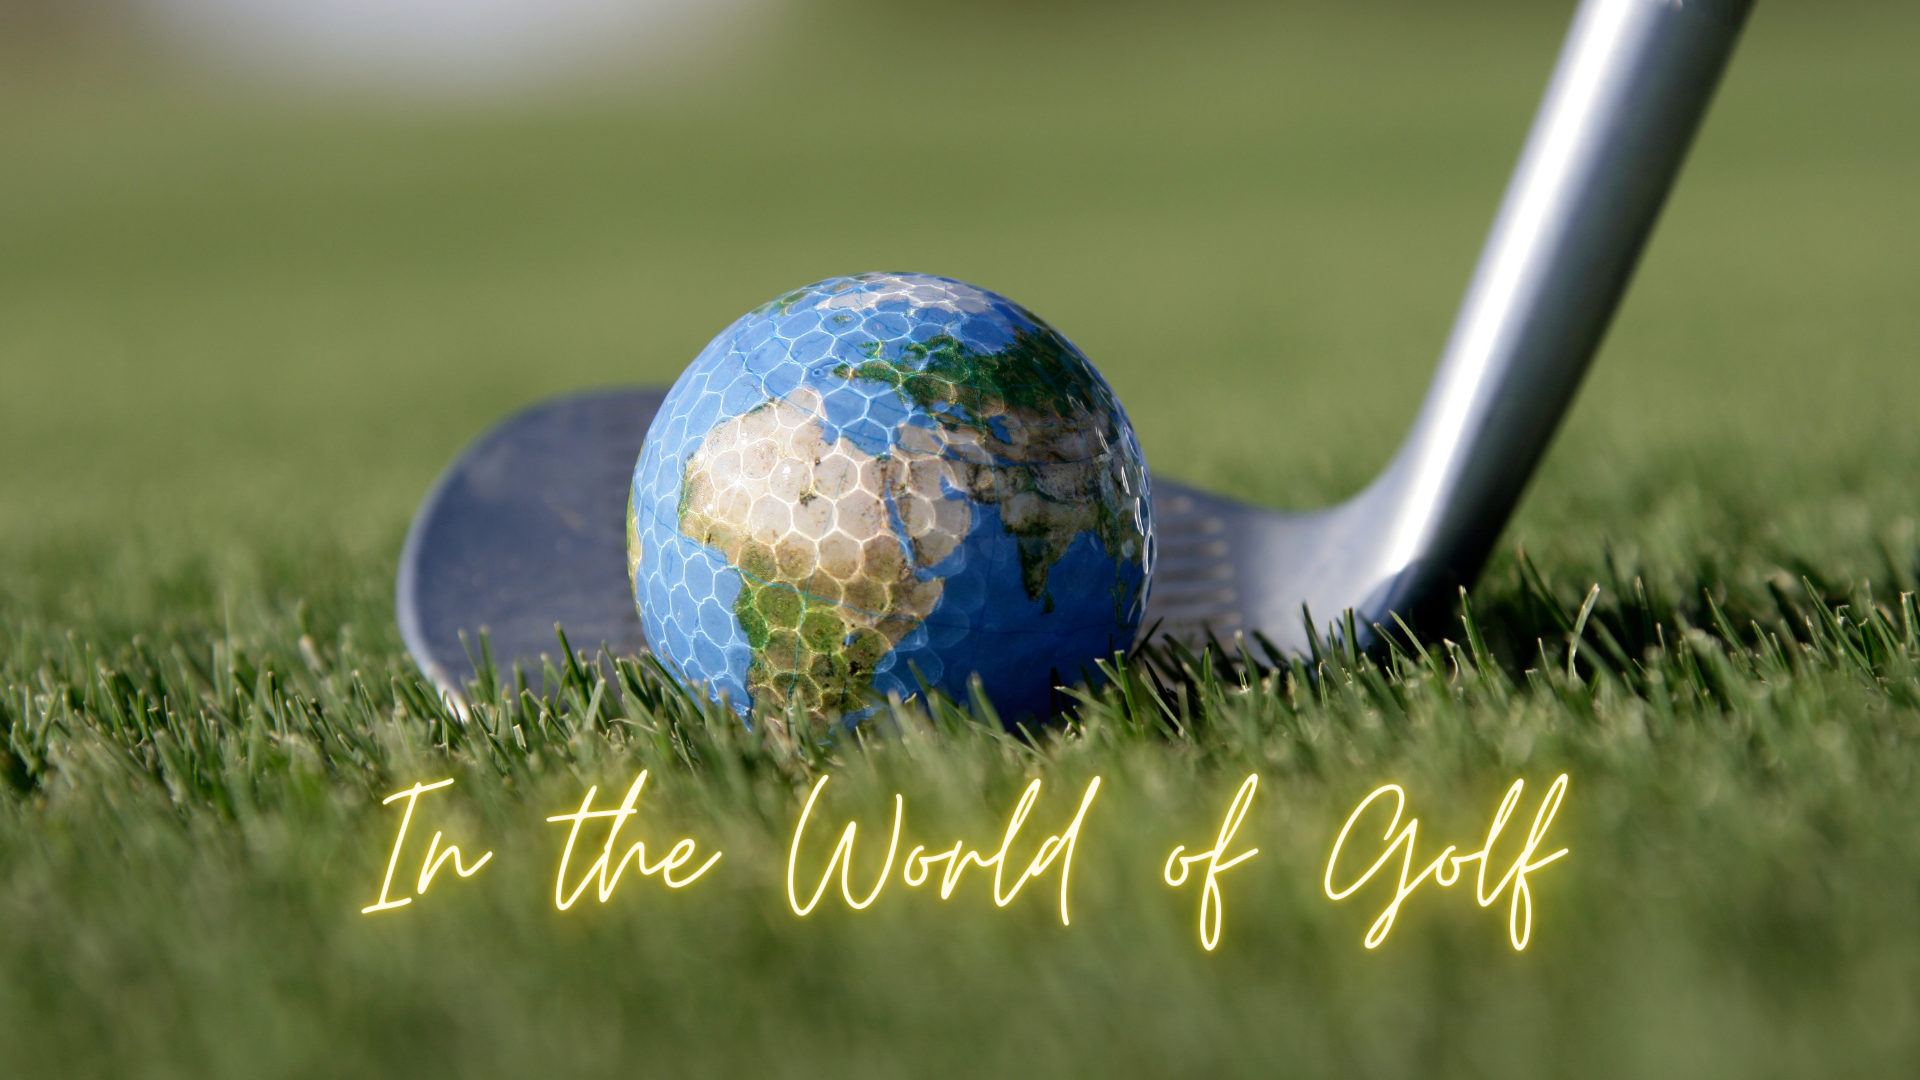 World of Golf this Week